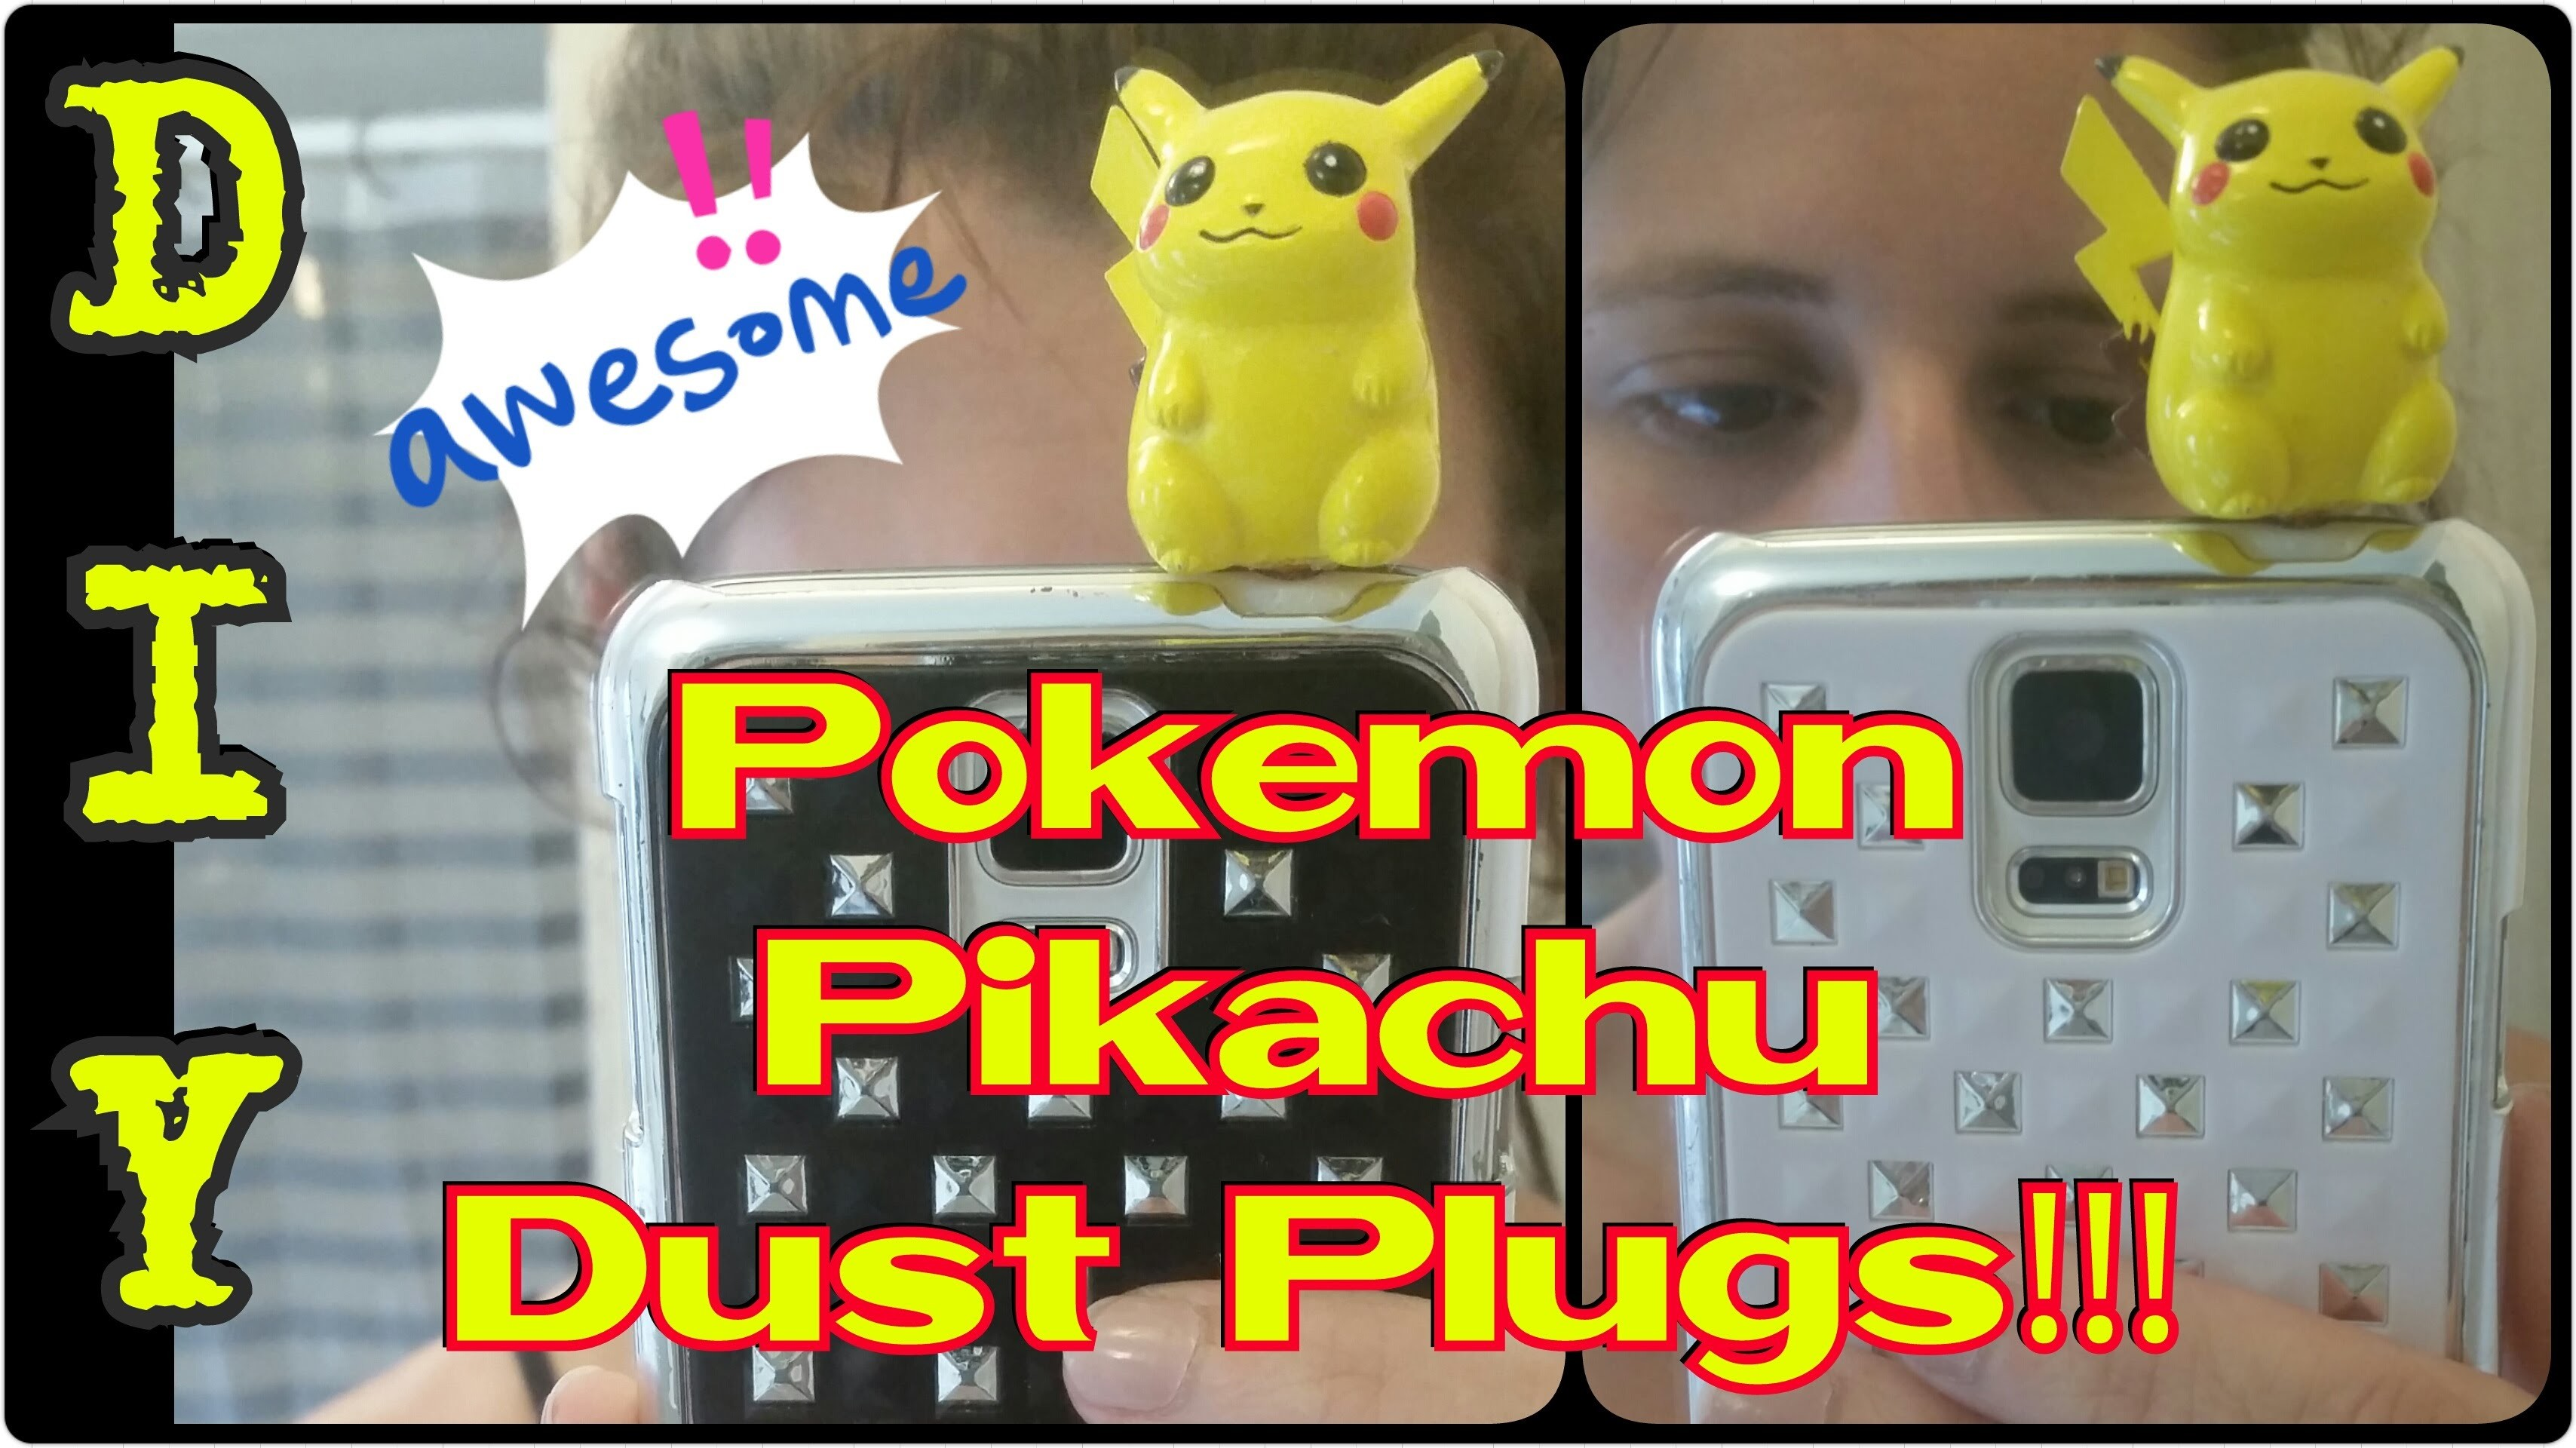 DIY Pokemon Pikachu Dust Plugs